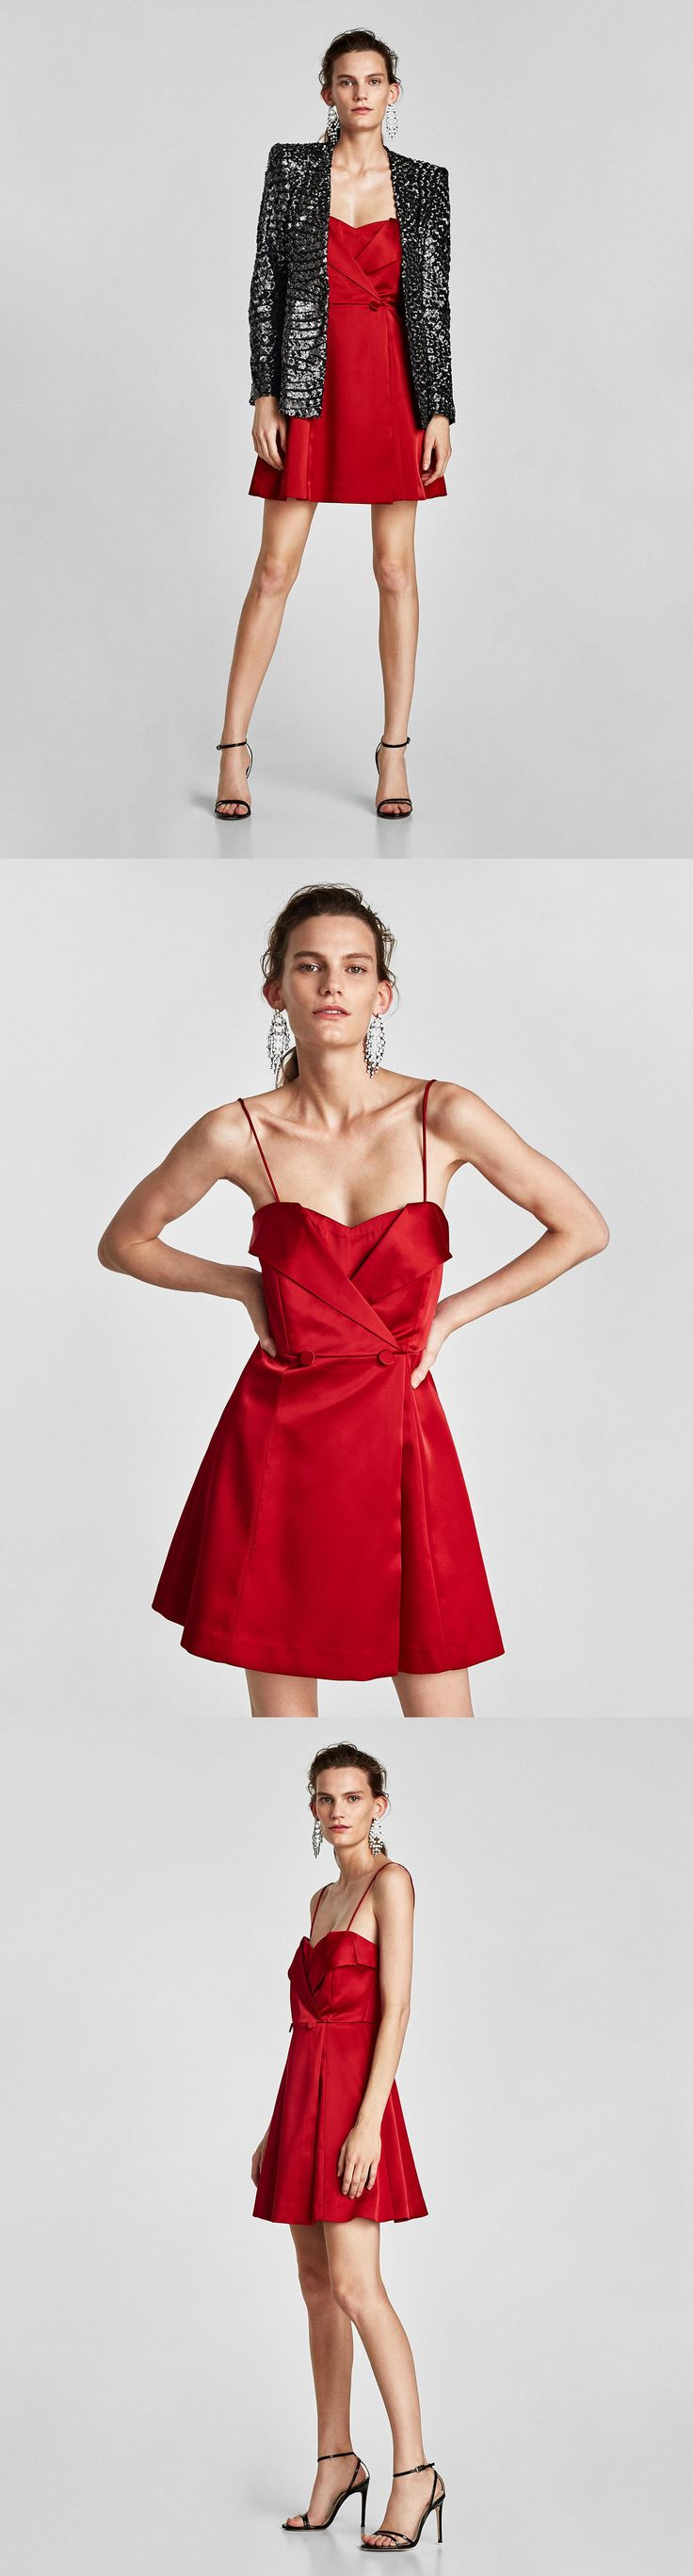 Satin Dress With Exposed Shoulders // 69.90 USD // Zara // Off-the-shoulder dress with removable straps. Featuring a cinched waist with matching lined buttons, an A-line silhouette with a crossed front and a reinforced elastic interior on the neckline. Fastens at the back with zip hidden in the seam. HEIGHT OF MODEL: 179 CM / 5′ 10″